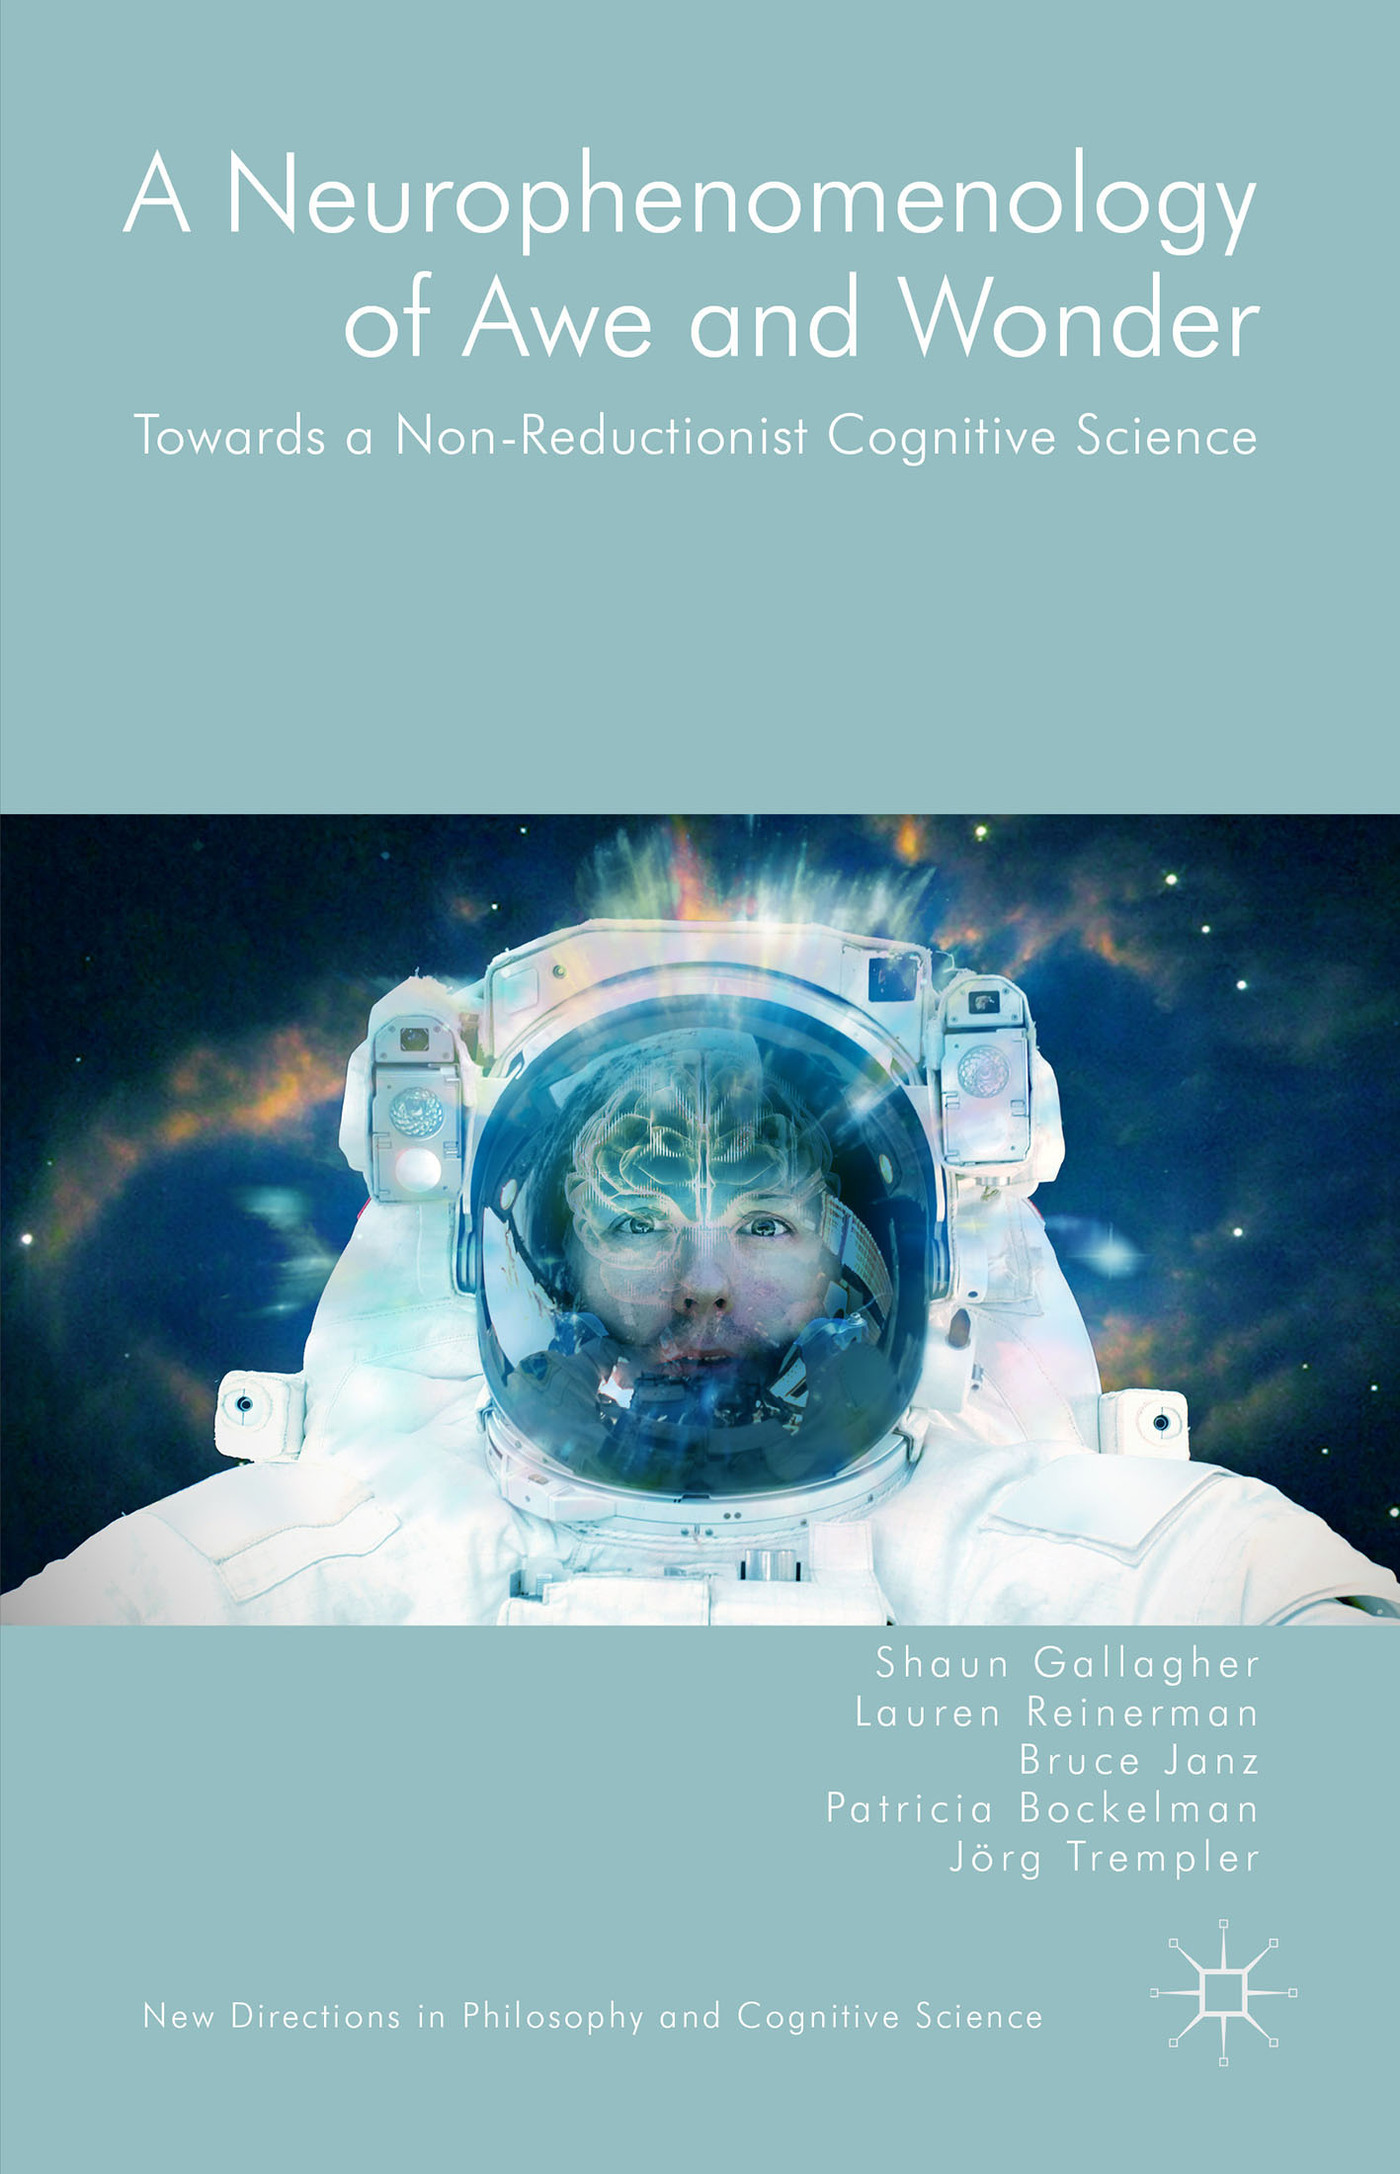 A-Neurophenomenology-of-Awe-and-Wonder-Towards-a-Non-Reductionist-Cognitive-Science